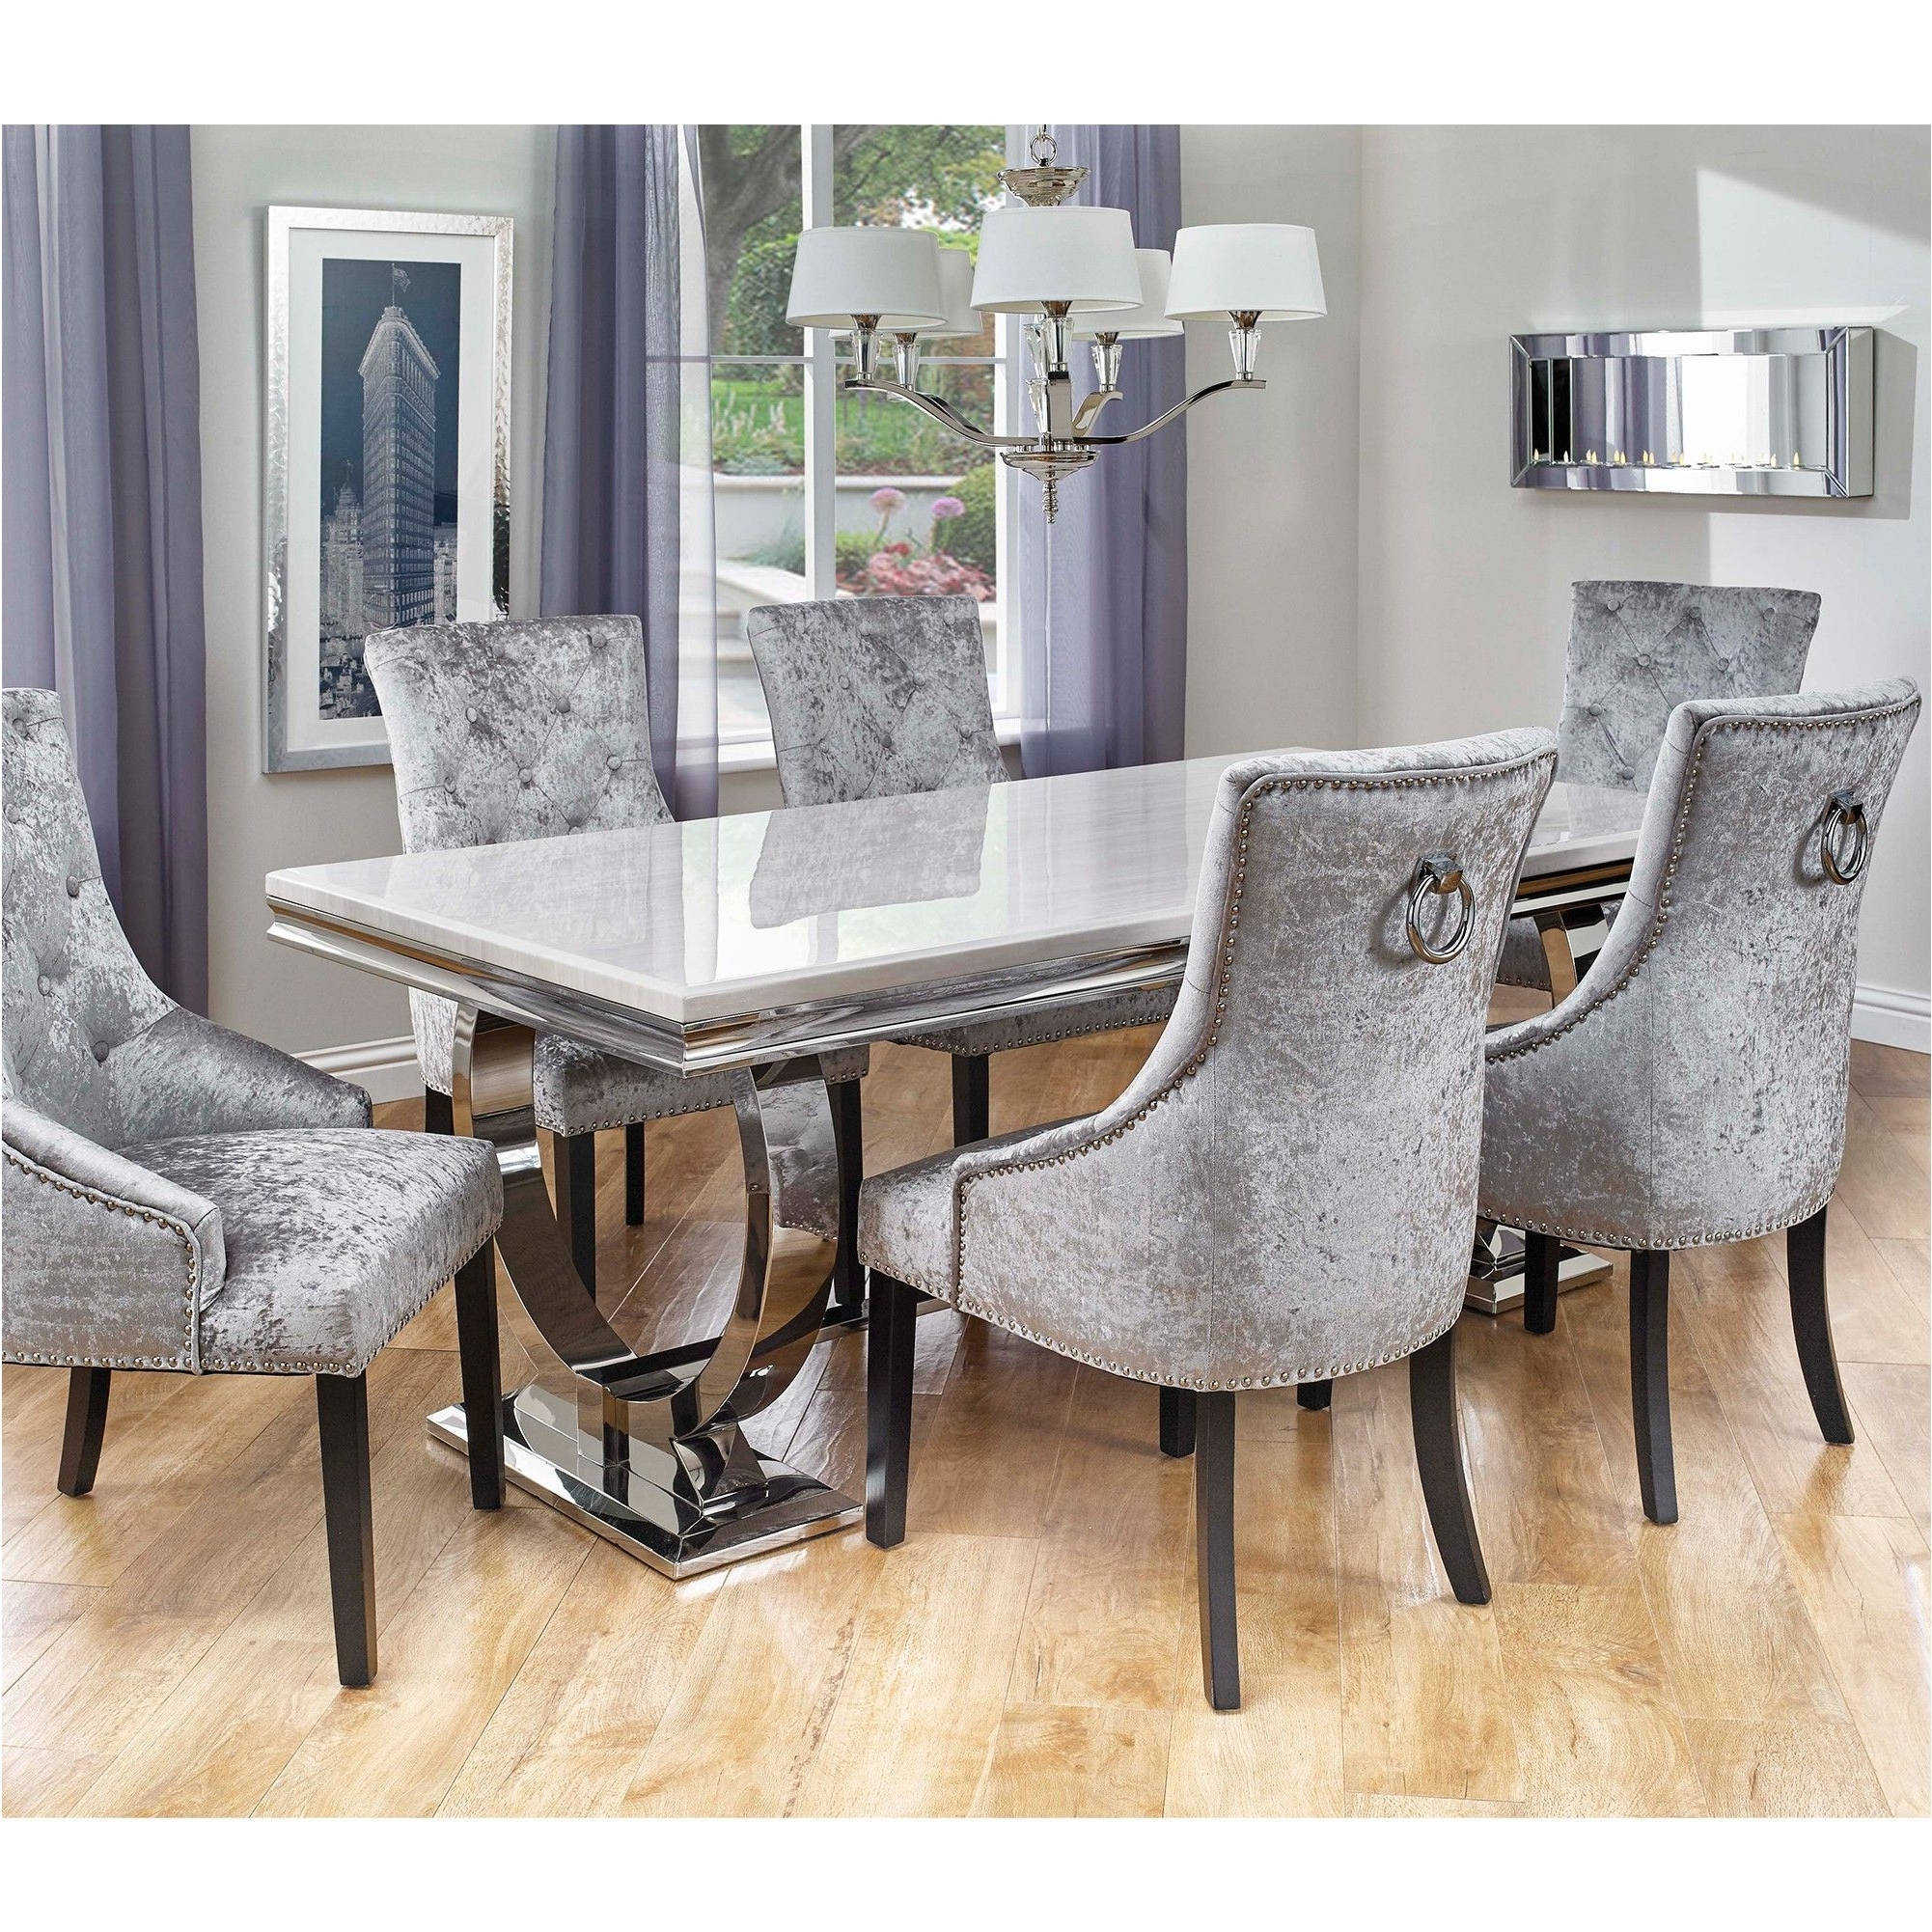 6 Seater Round Dining Tables Inside 2017 Marvelous 6 Chair Dining Table (Gallery 13 of 25)